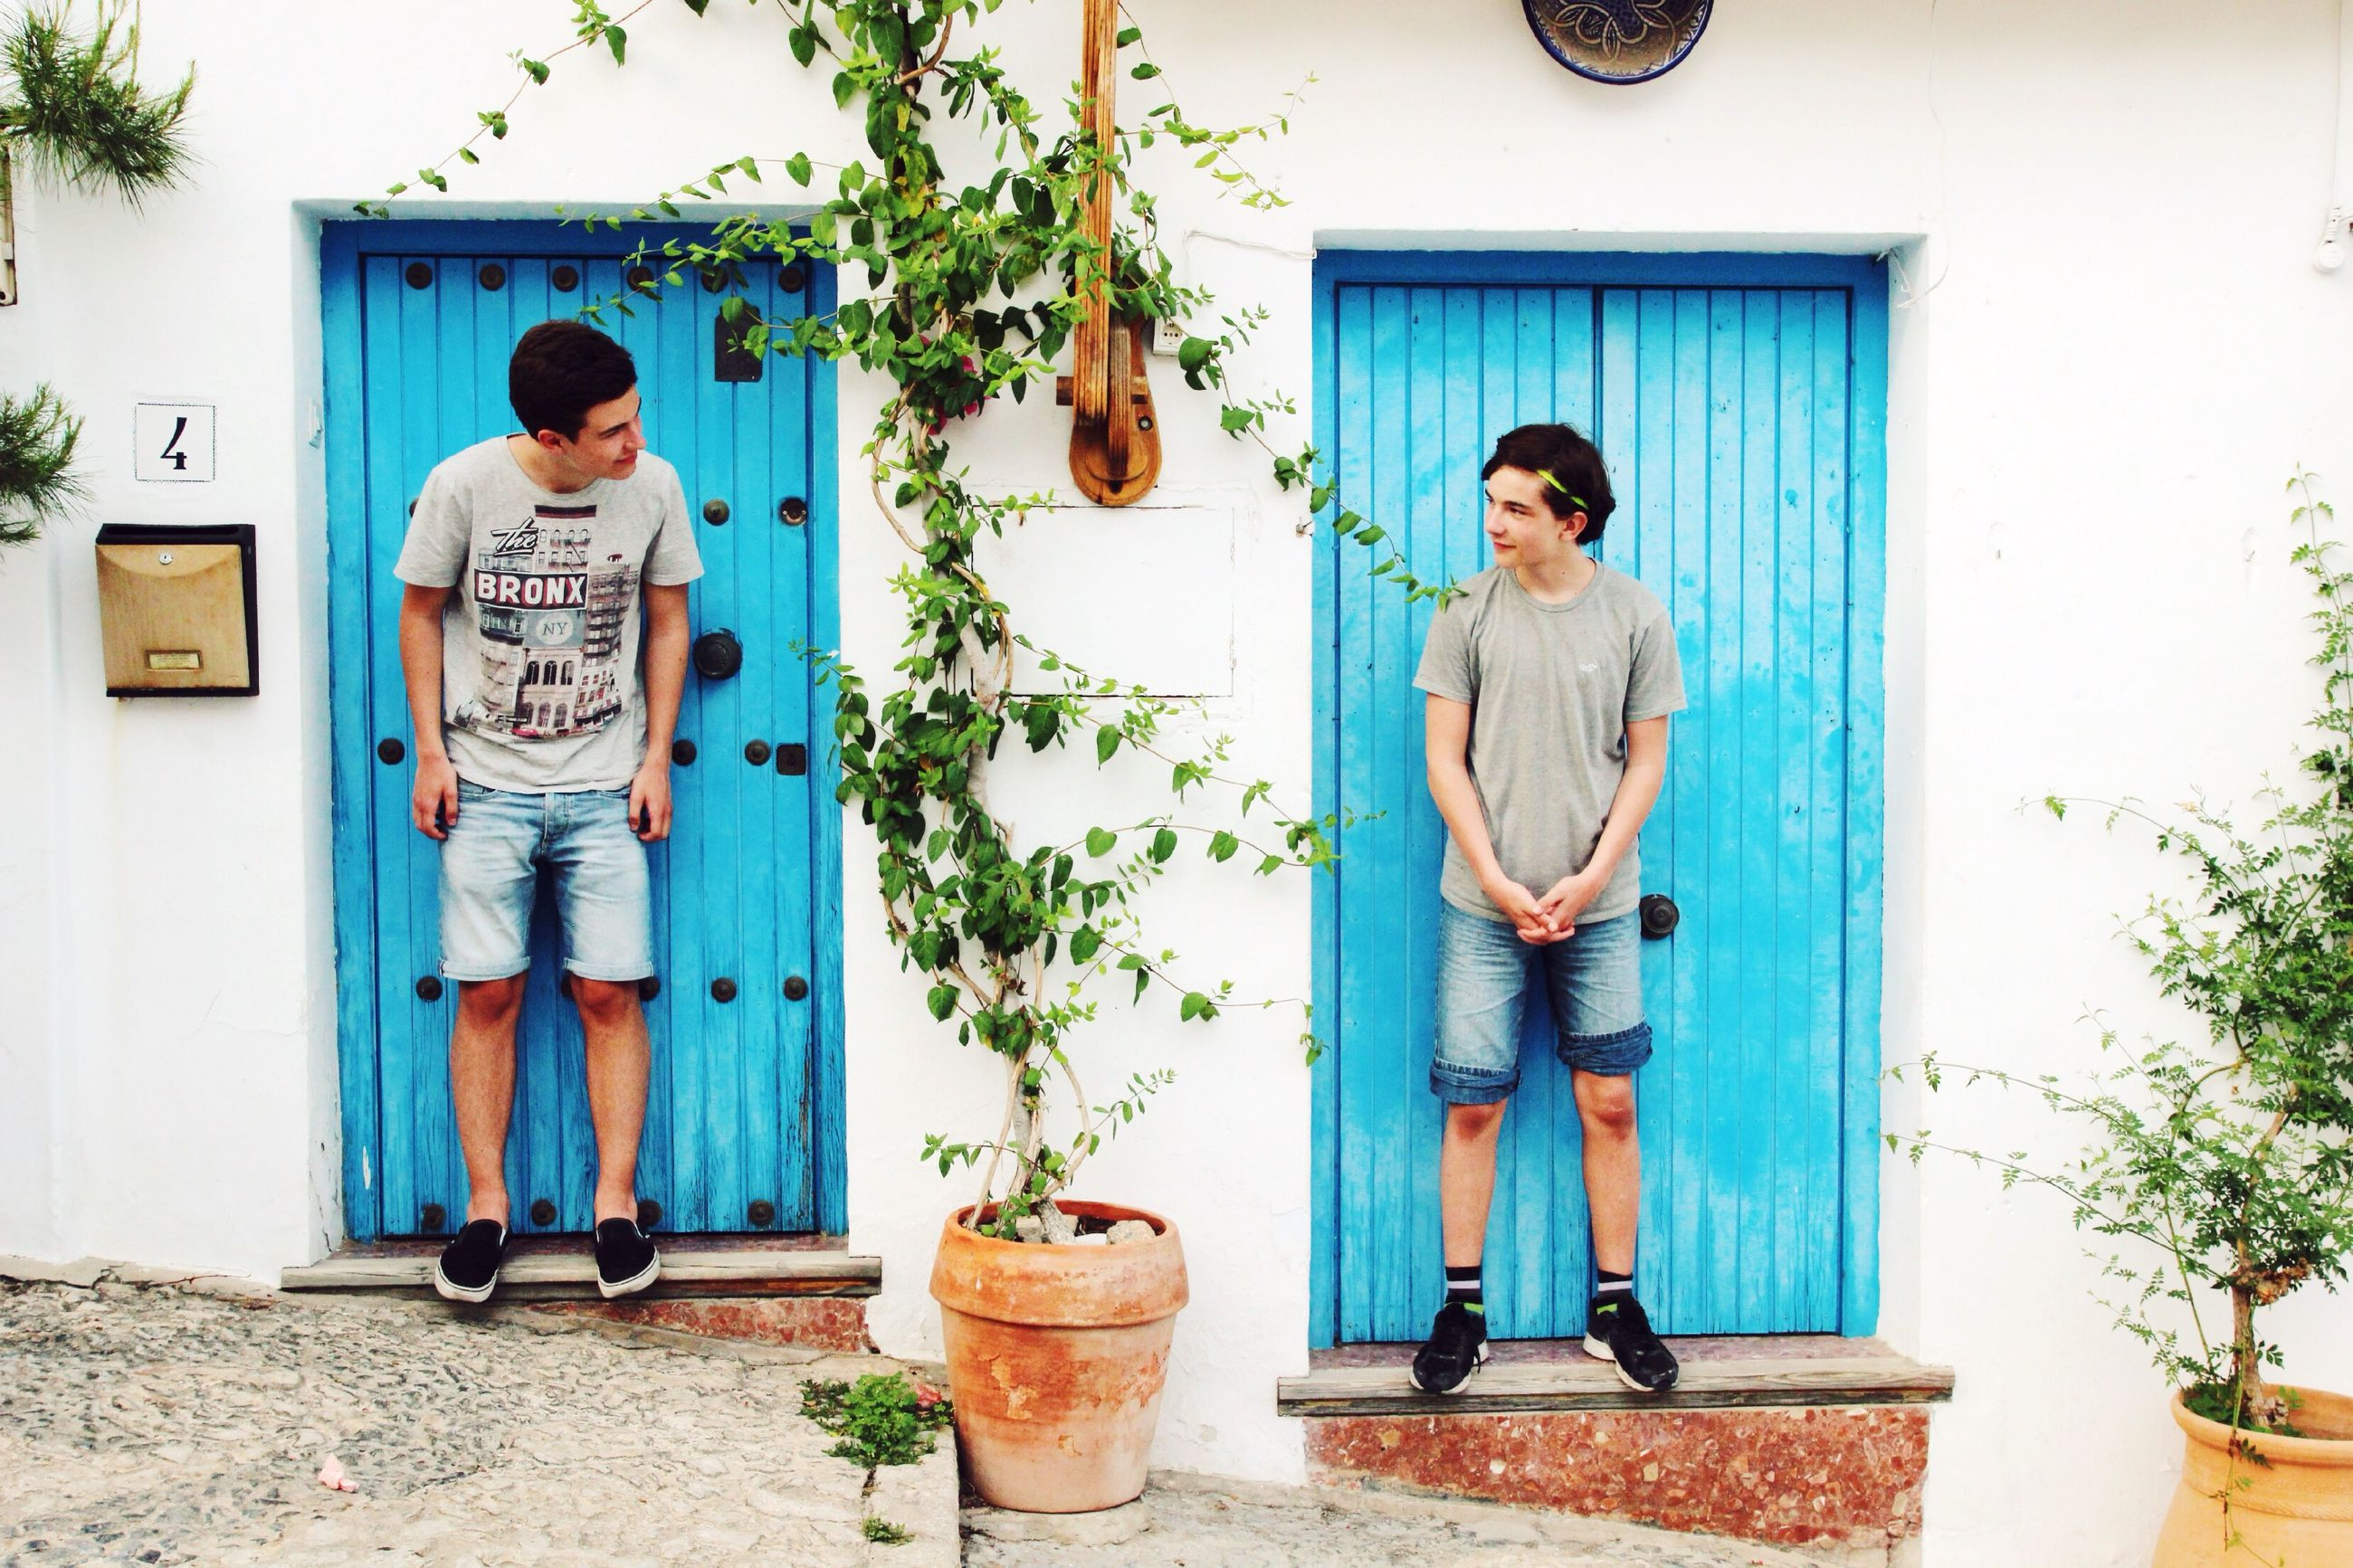 lifestyles, leisure activity, full length, casual clothing, built structure, architecture, house, person, standing, building exterior, childhood, boys, elementary age, door, day, blue, sitting, potted plant